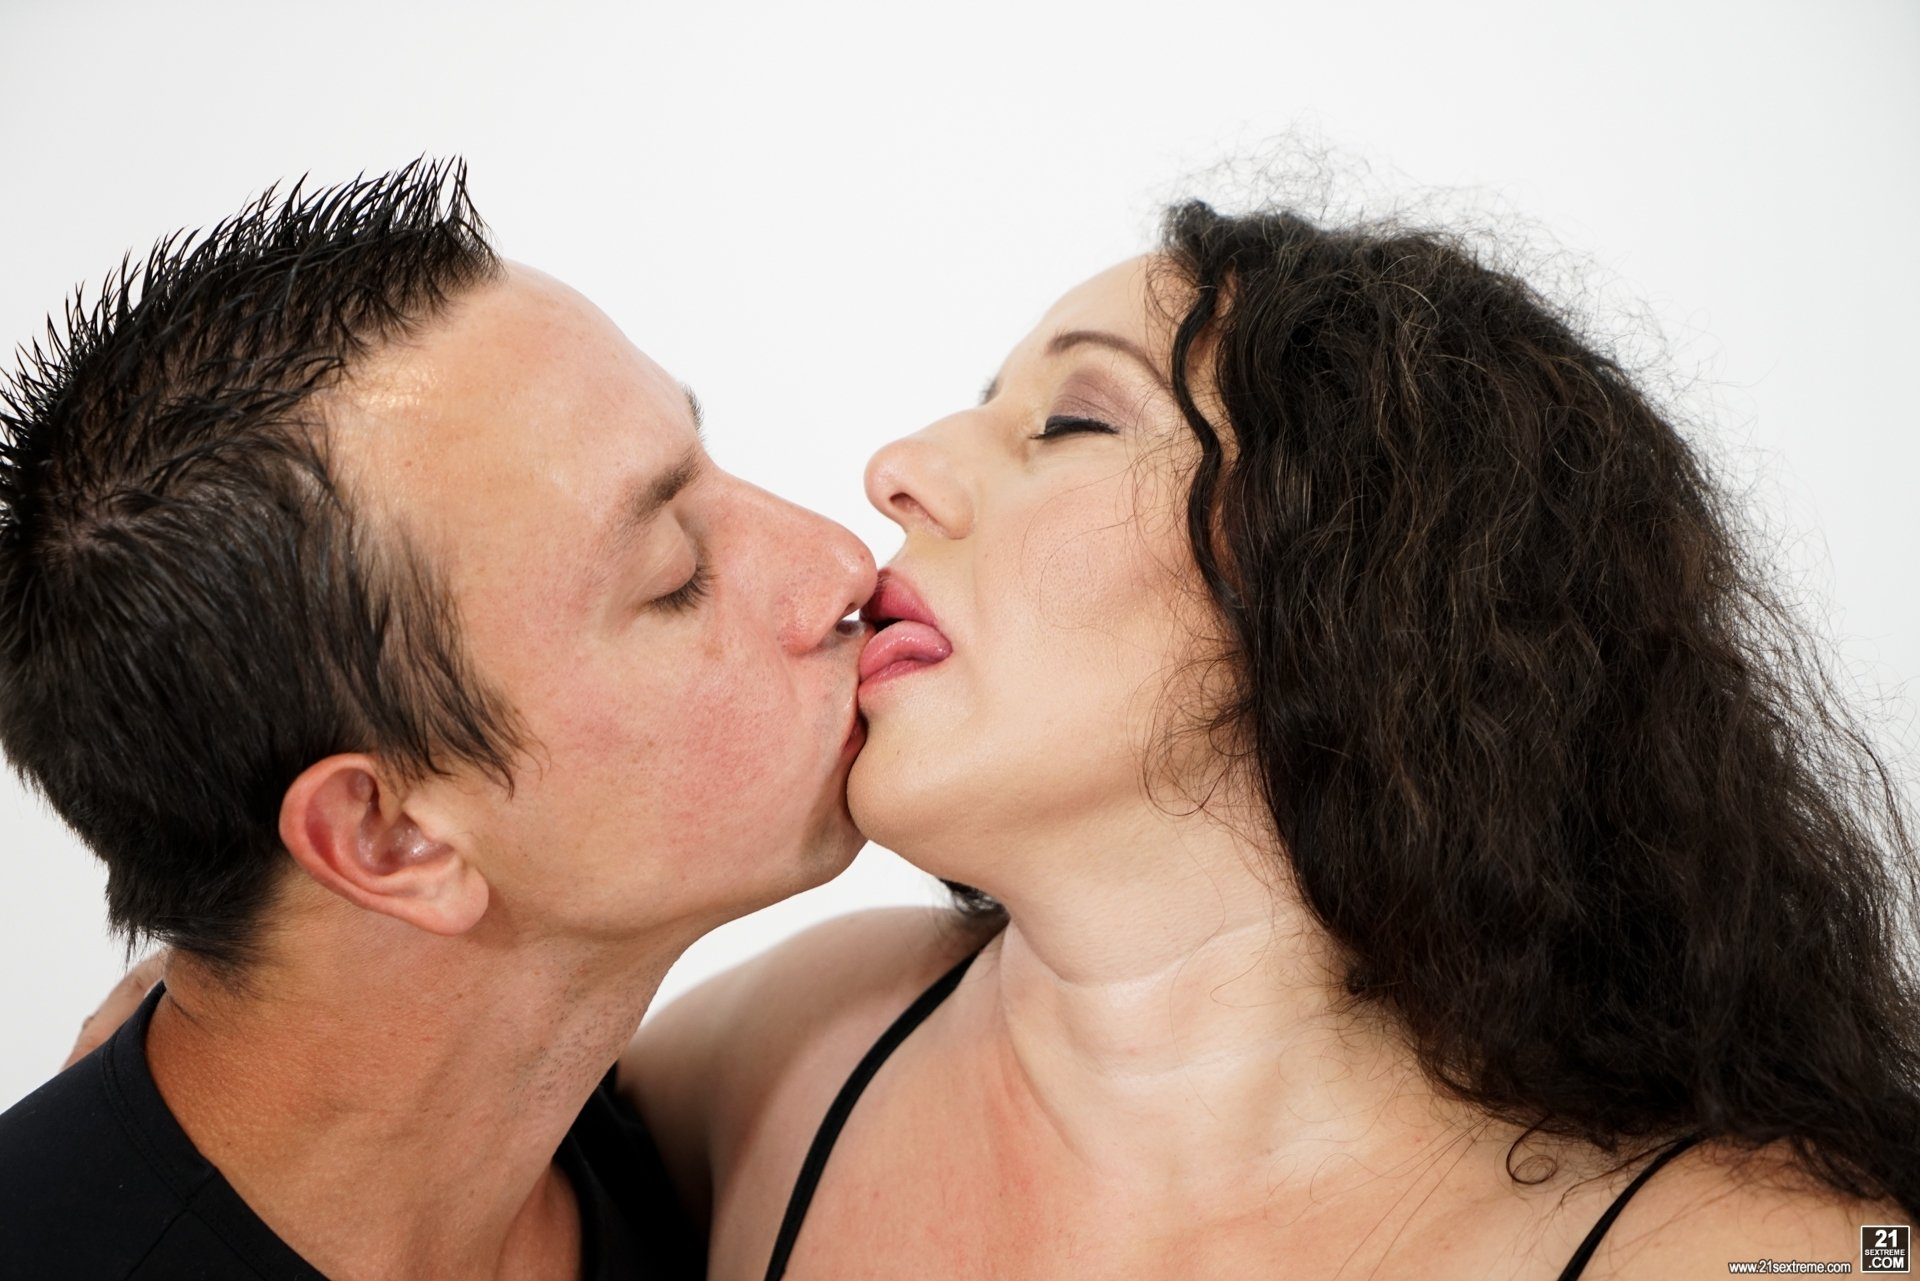 Reluctant wife's first threesome story ginger bank porn